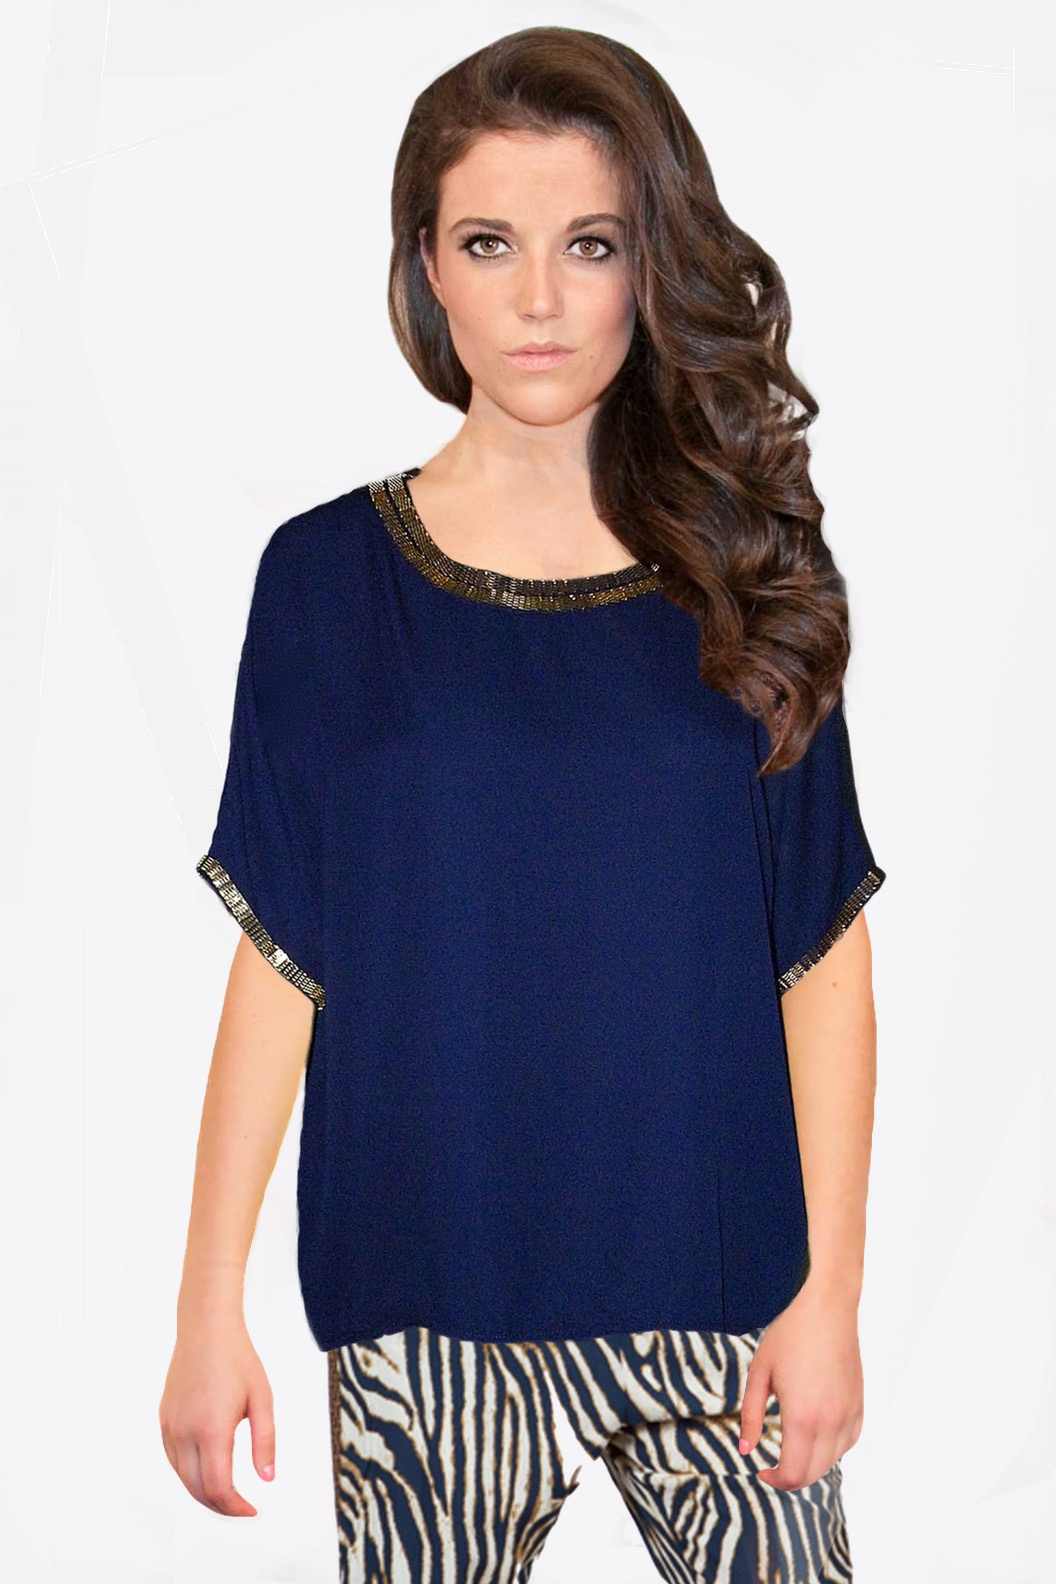 Navy Blue Chiffon Top | SkyStruk